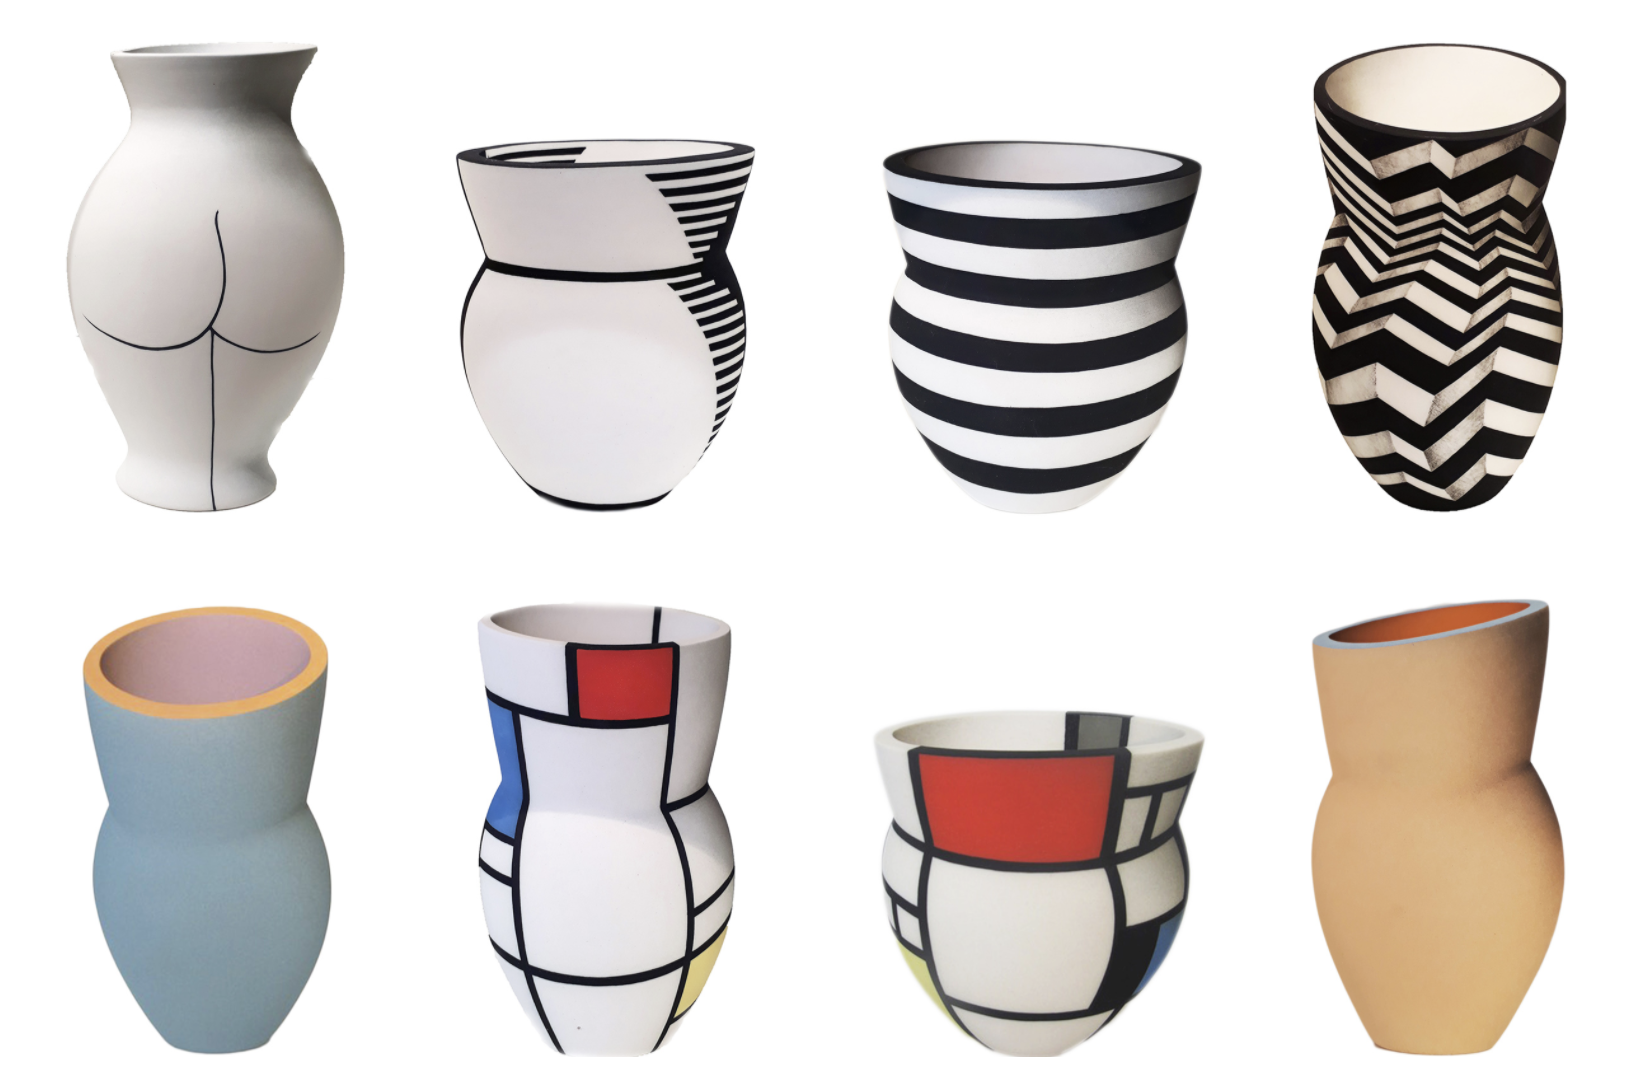 Illusional vases by Alice Rose